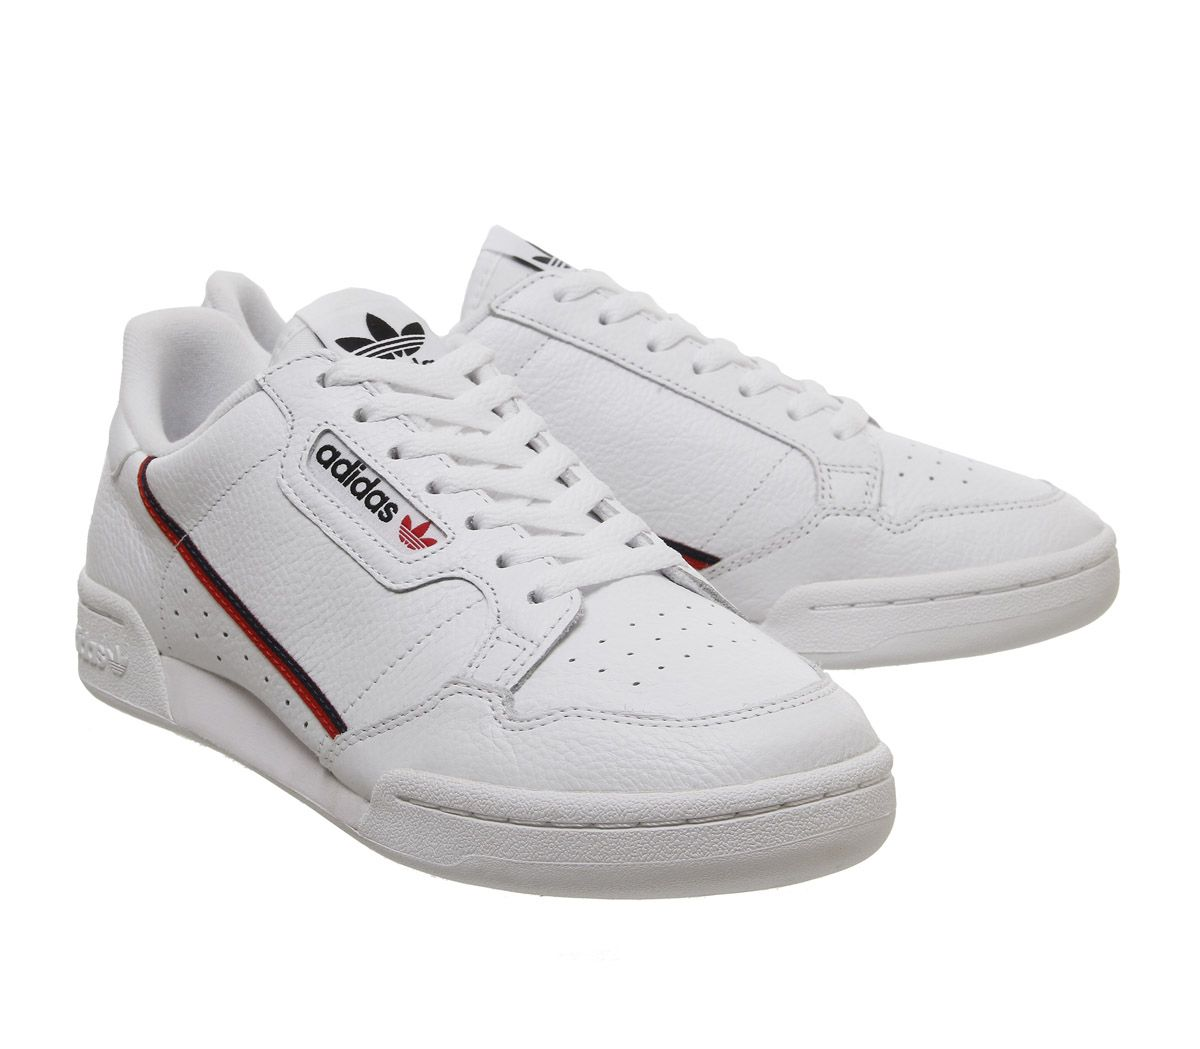 Adidas-80S-Continental-Trainers-White-White-Scarlet-Navy-Trainers-Shoes thumbnail 7